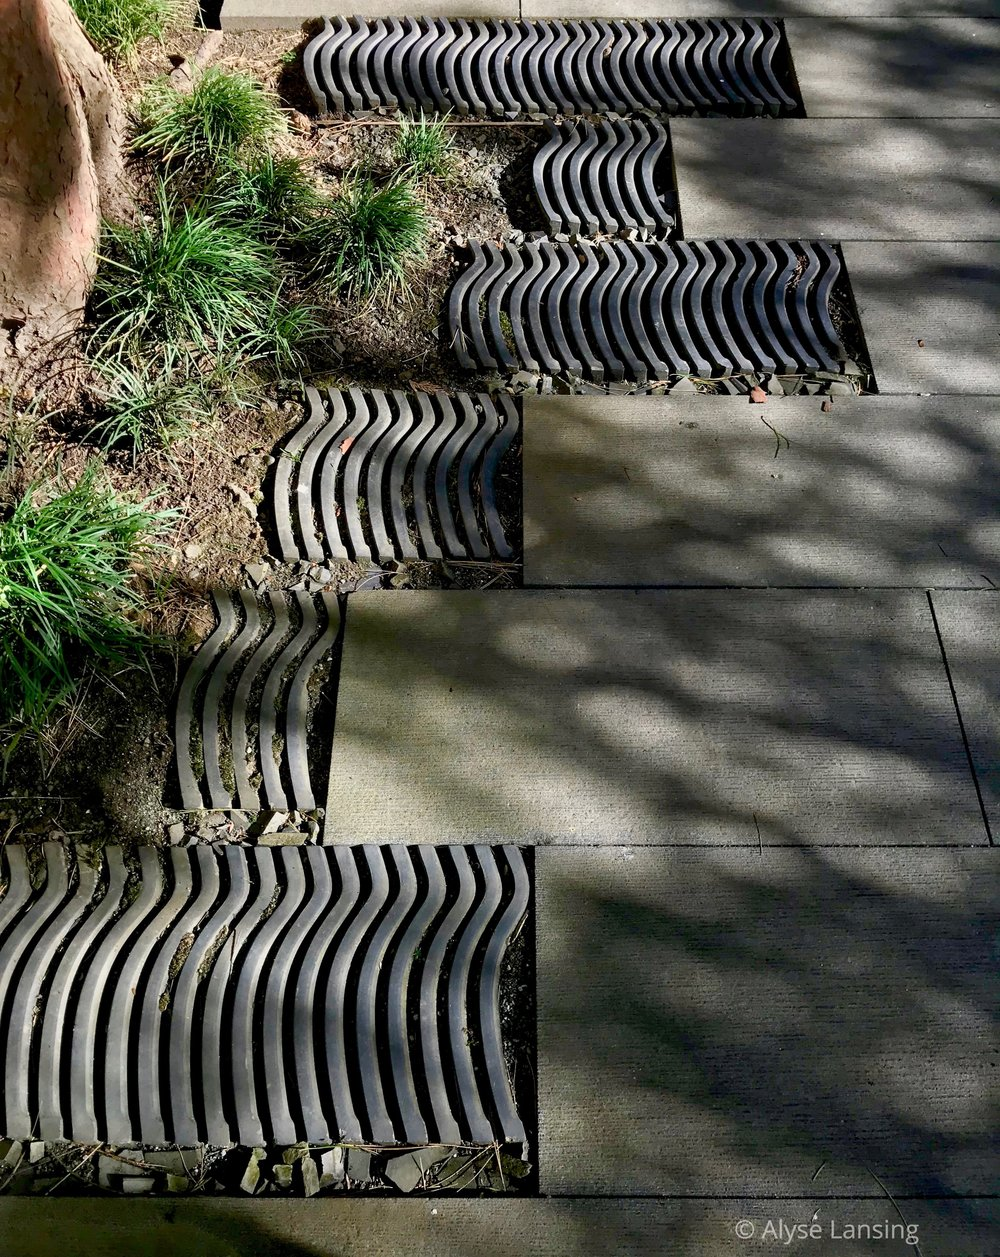 Paving detail at the foot of the pine